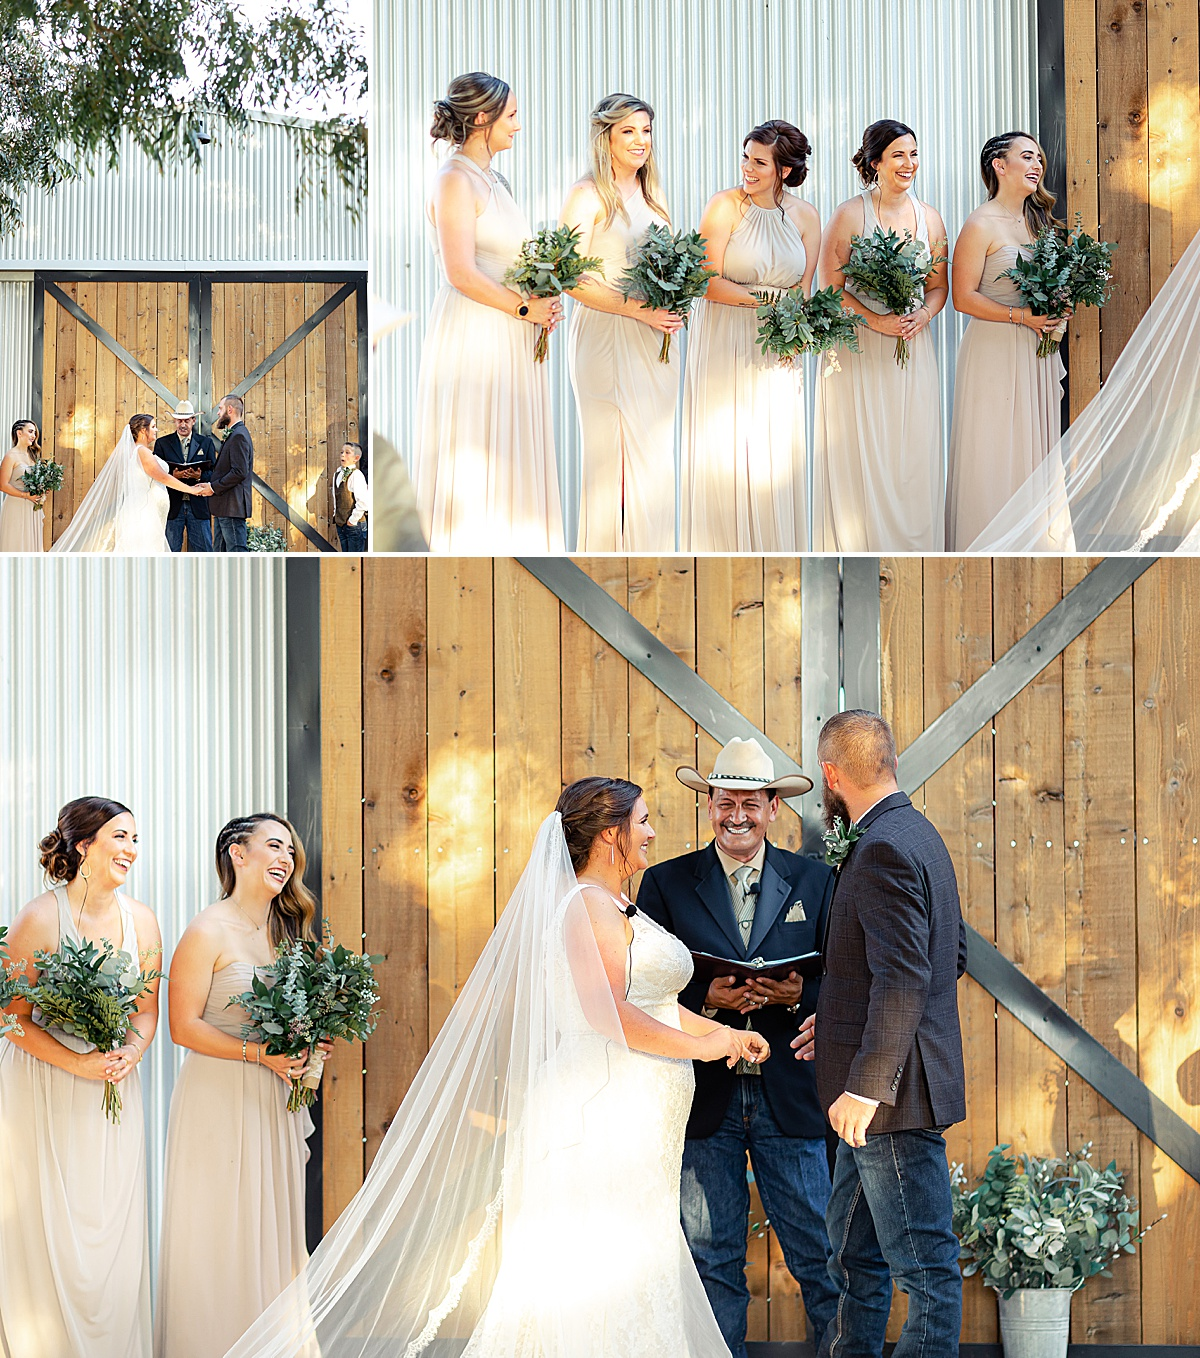 Rustic-Texas-Wedding-Hollow-Creek-Ranch-Carly-Barton-Photography_0108.jpg